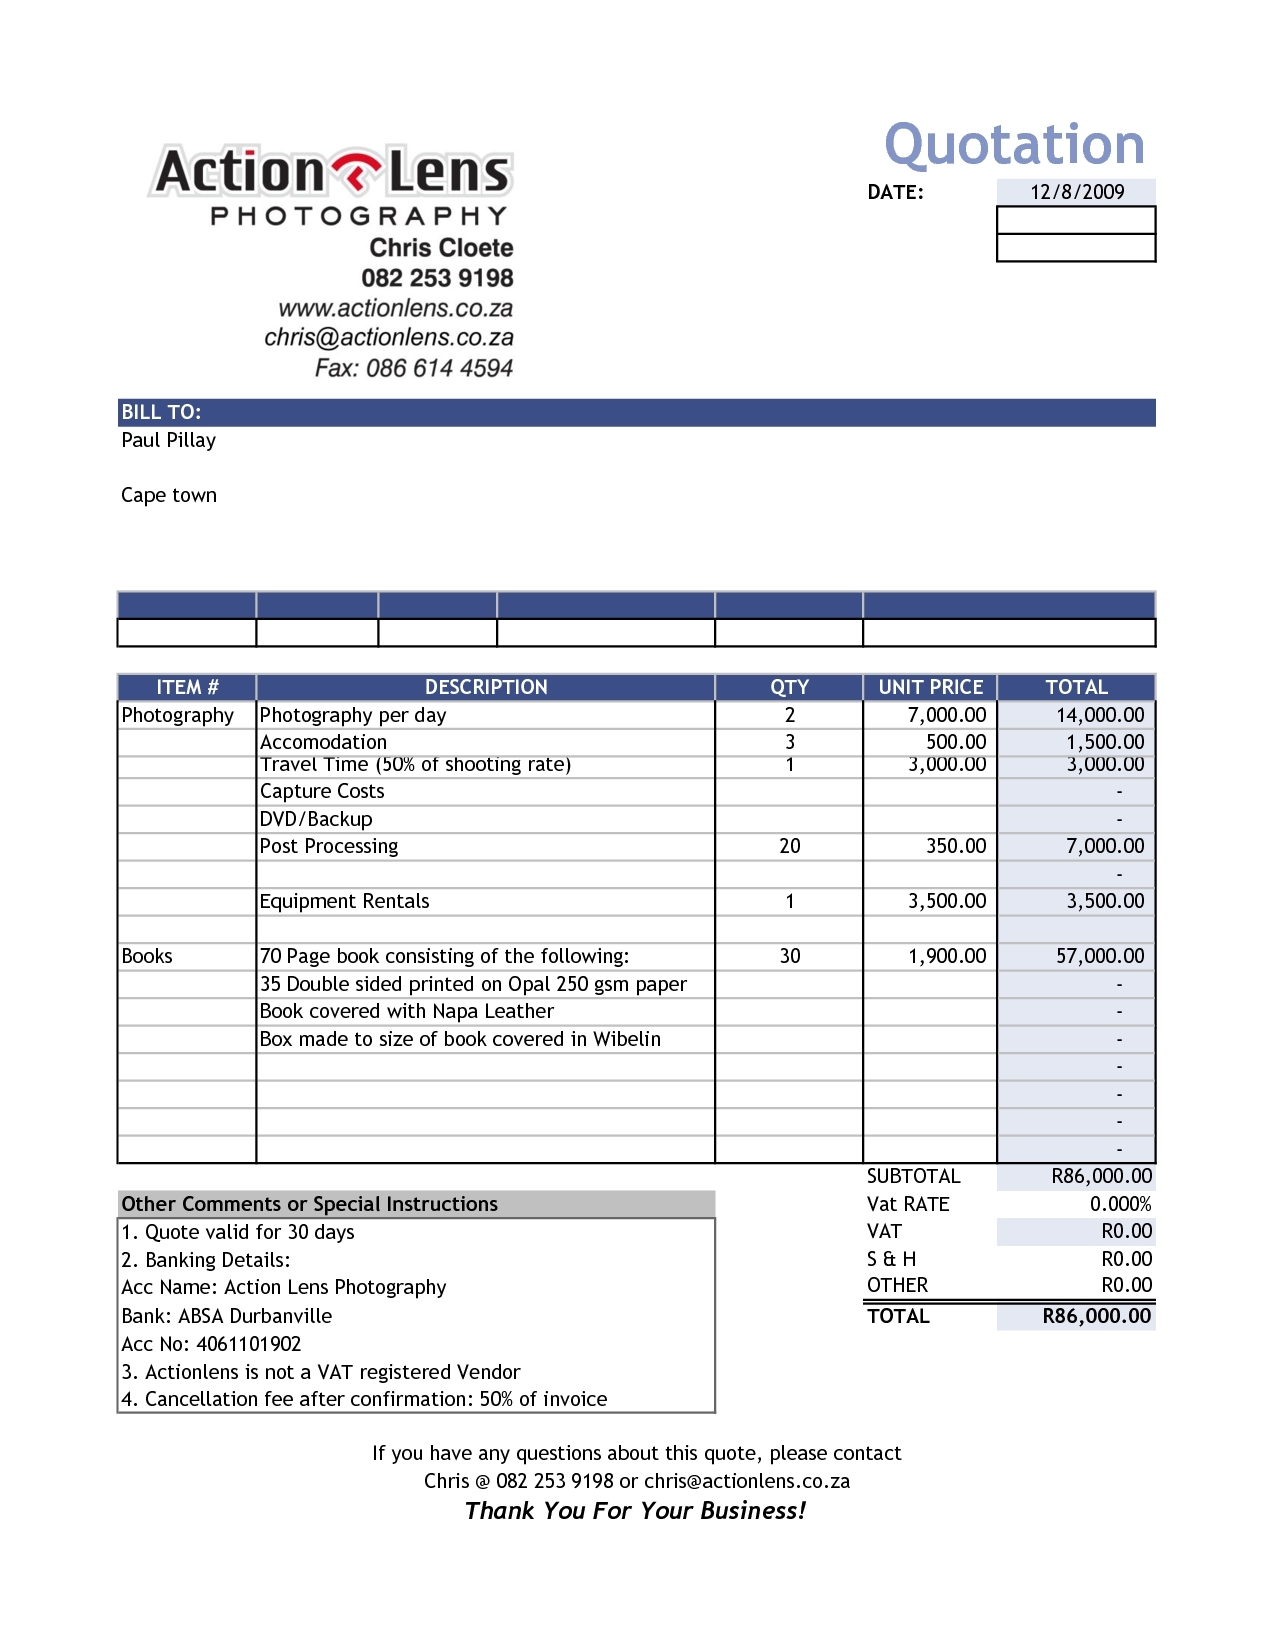 sale invoice format in excel free download invoice template ideas